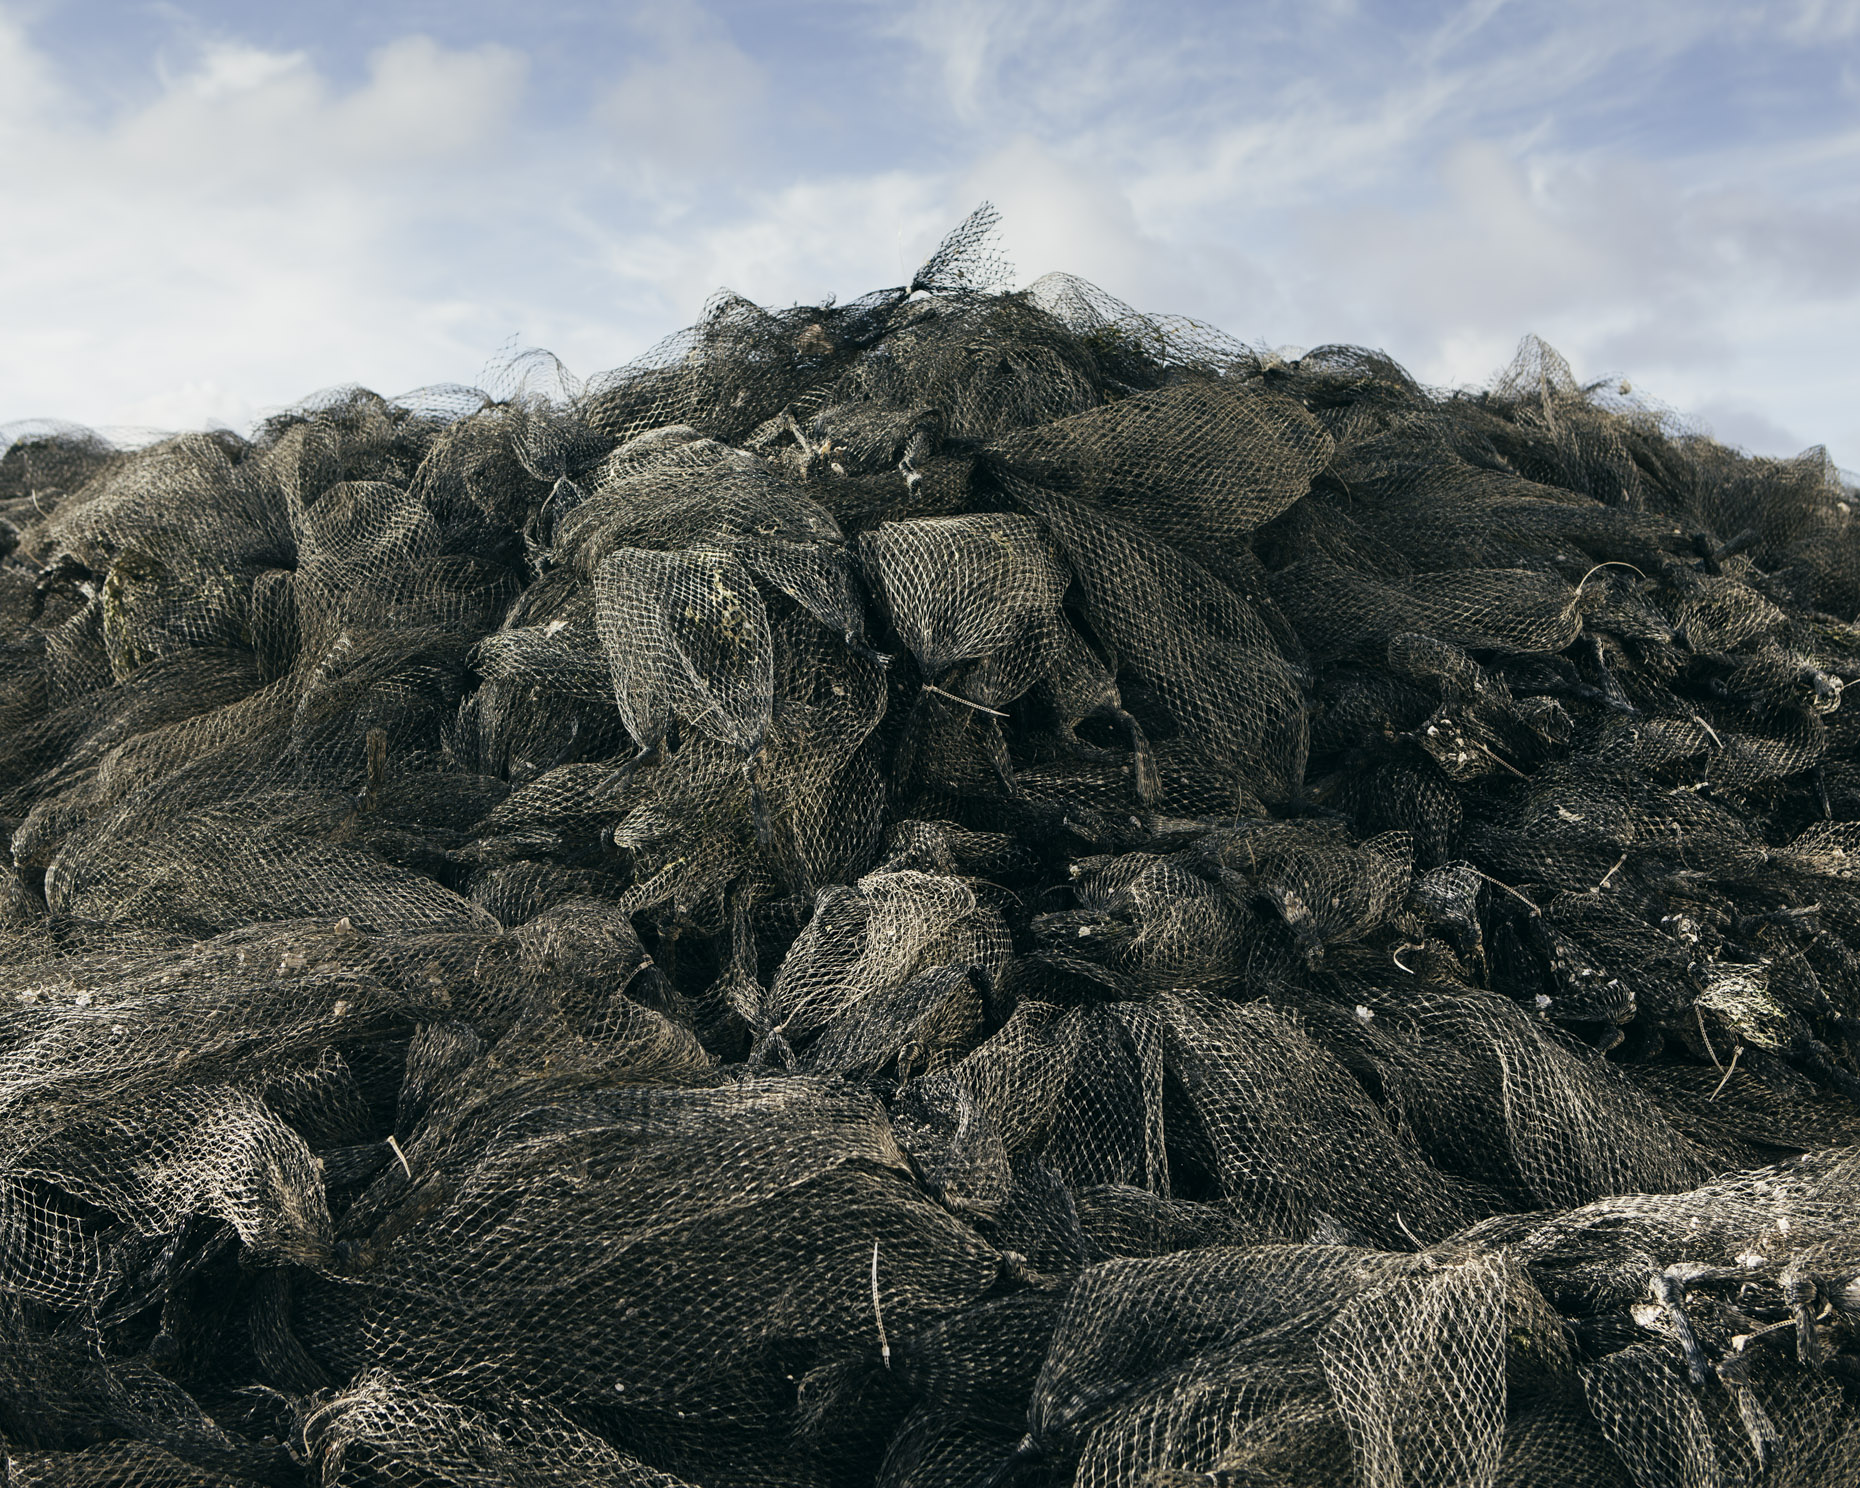 Oyster bag pile, Oysterville, WA - Paul Edmondson